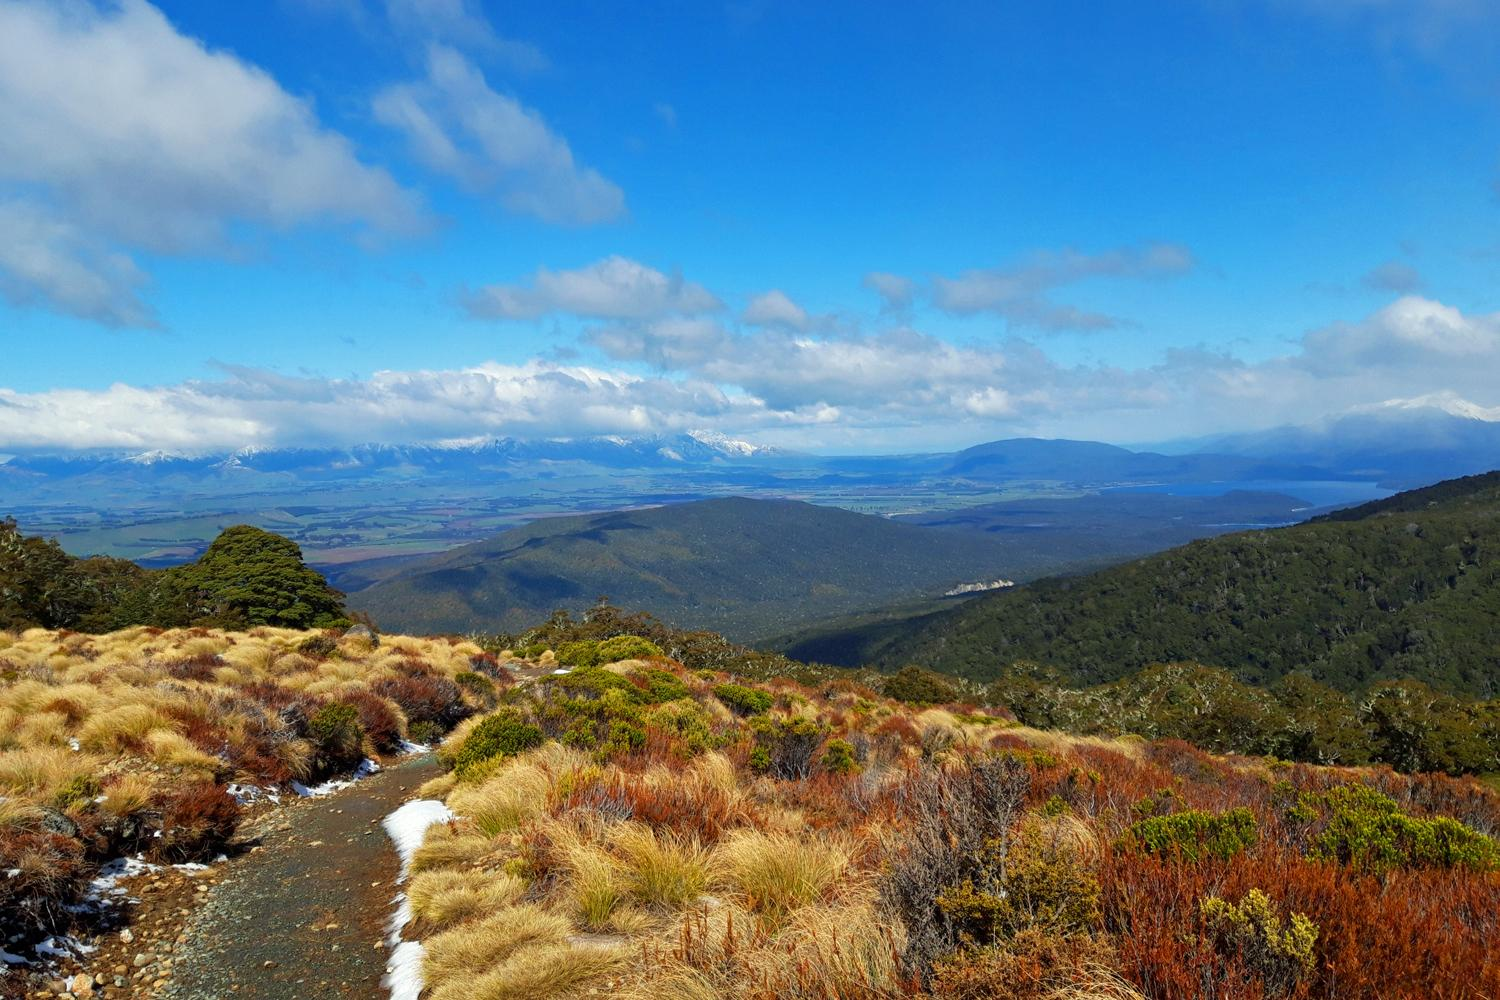 Views on the way up to Luxmore Hut